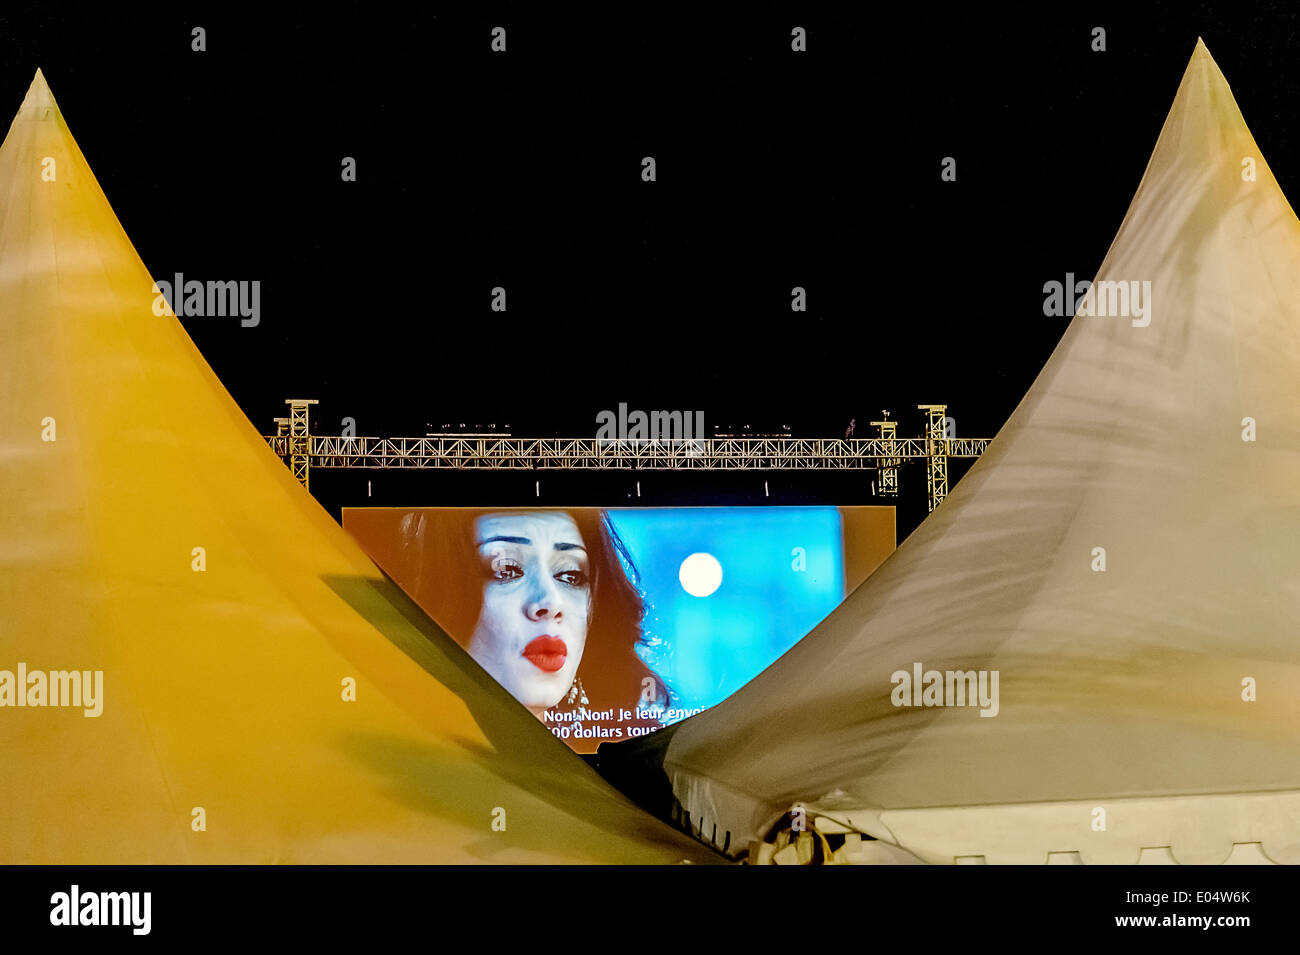 Europe, France, Alpes-Maritimes, Cannes. Projection outdoor movie for the film festival. - Stock Image